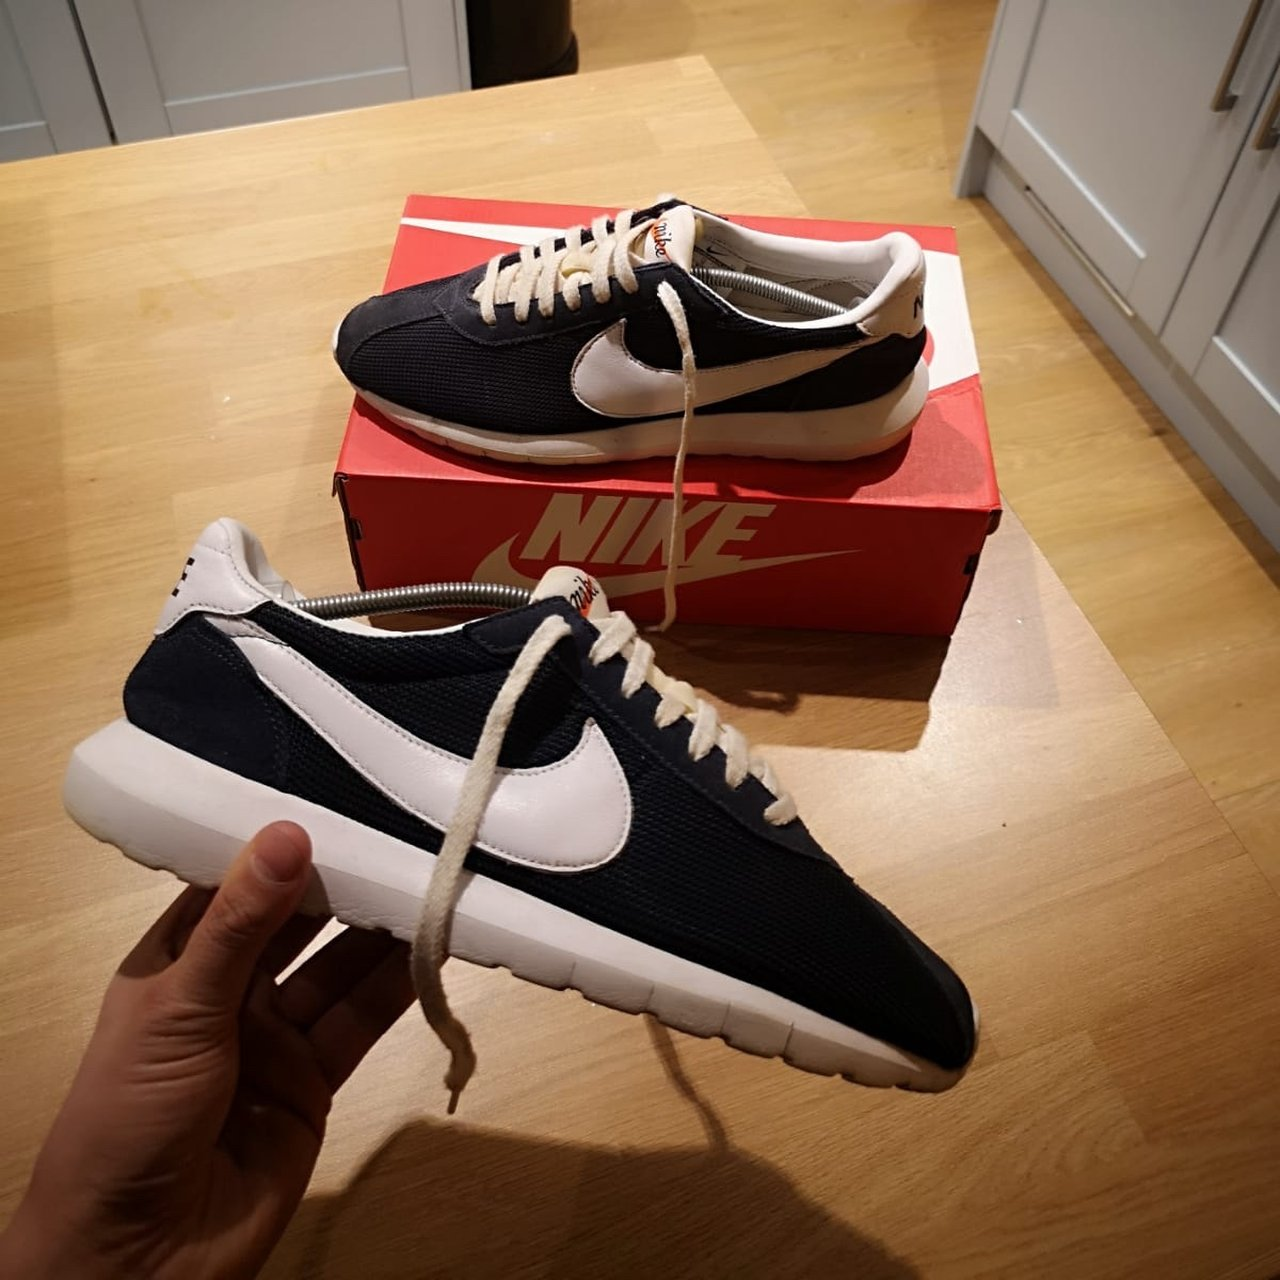 53416436990 Navy Nike Trainers Size 10 9 10 Condition